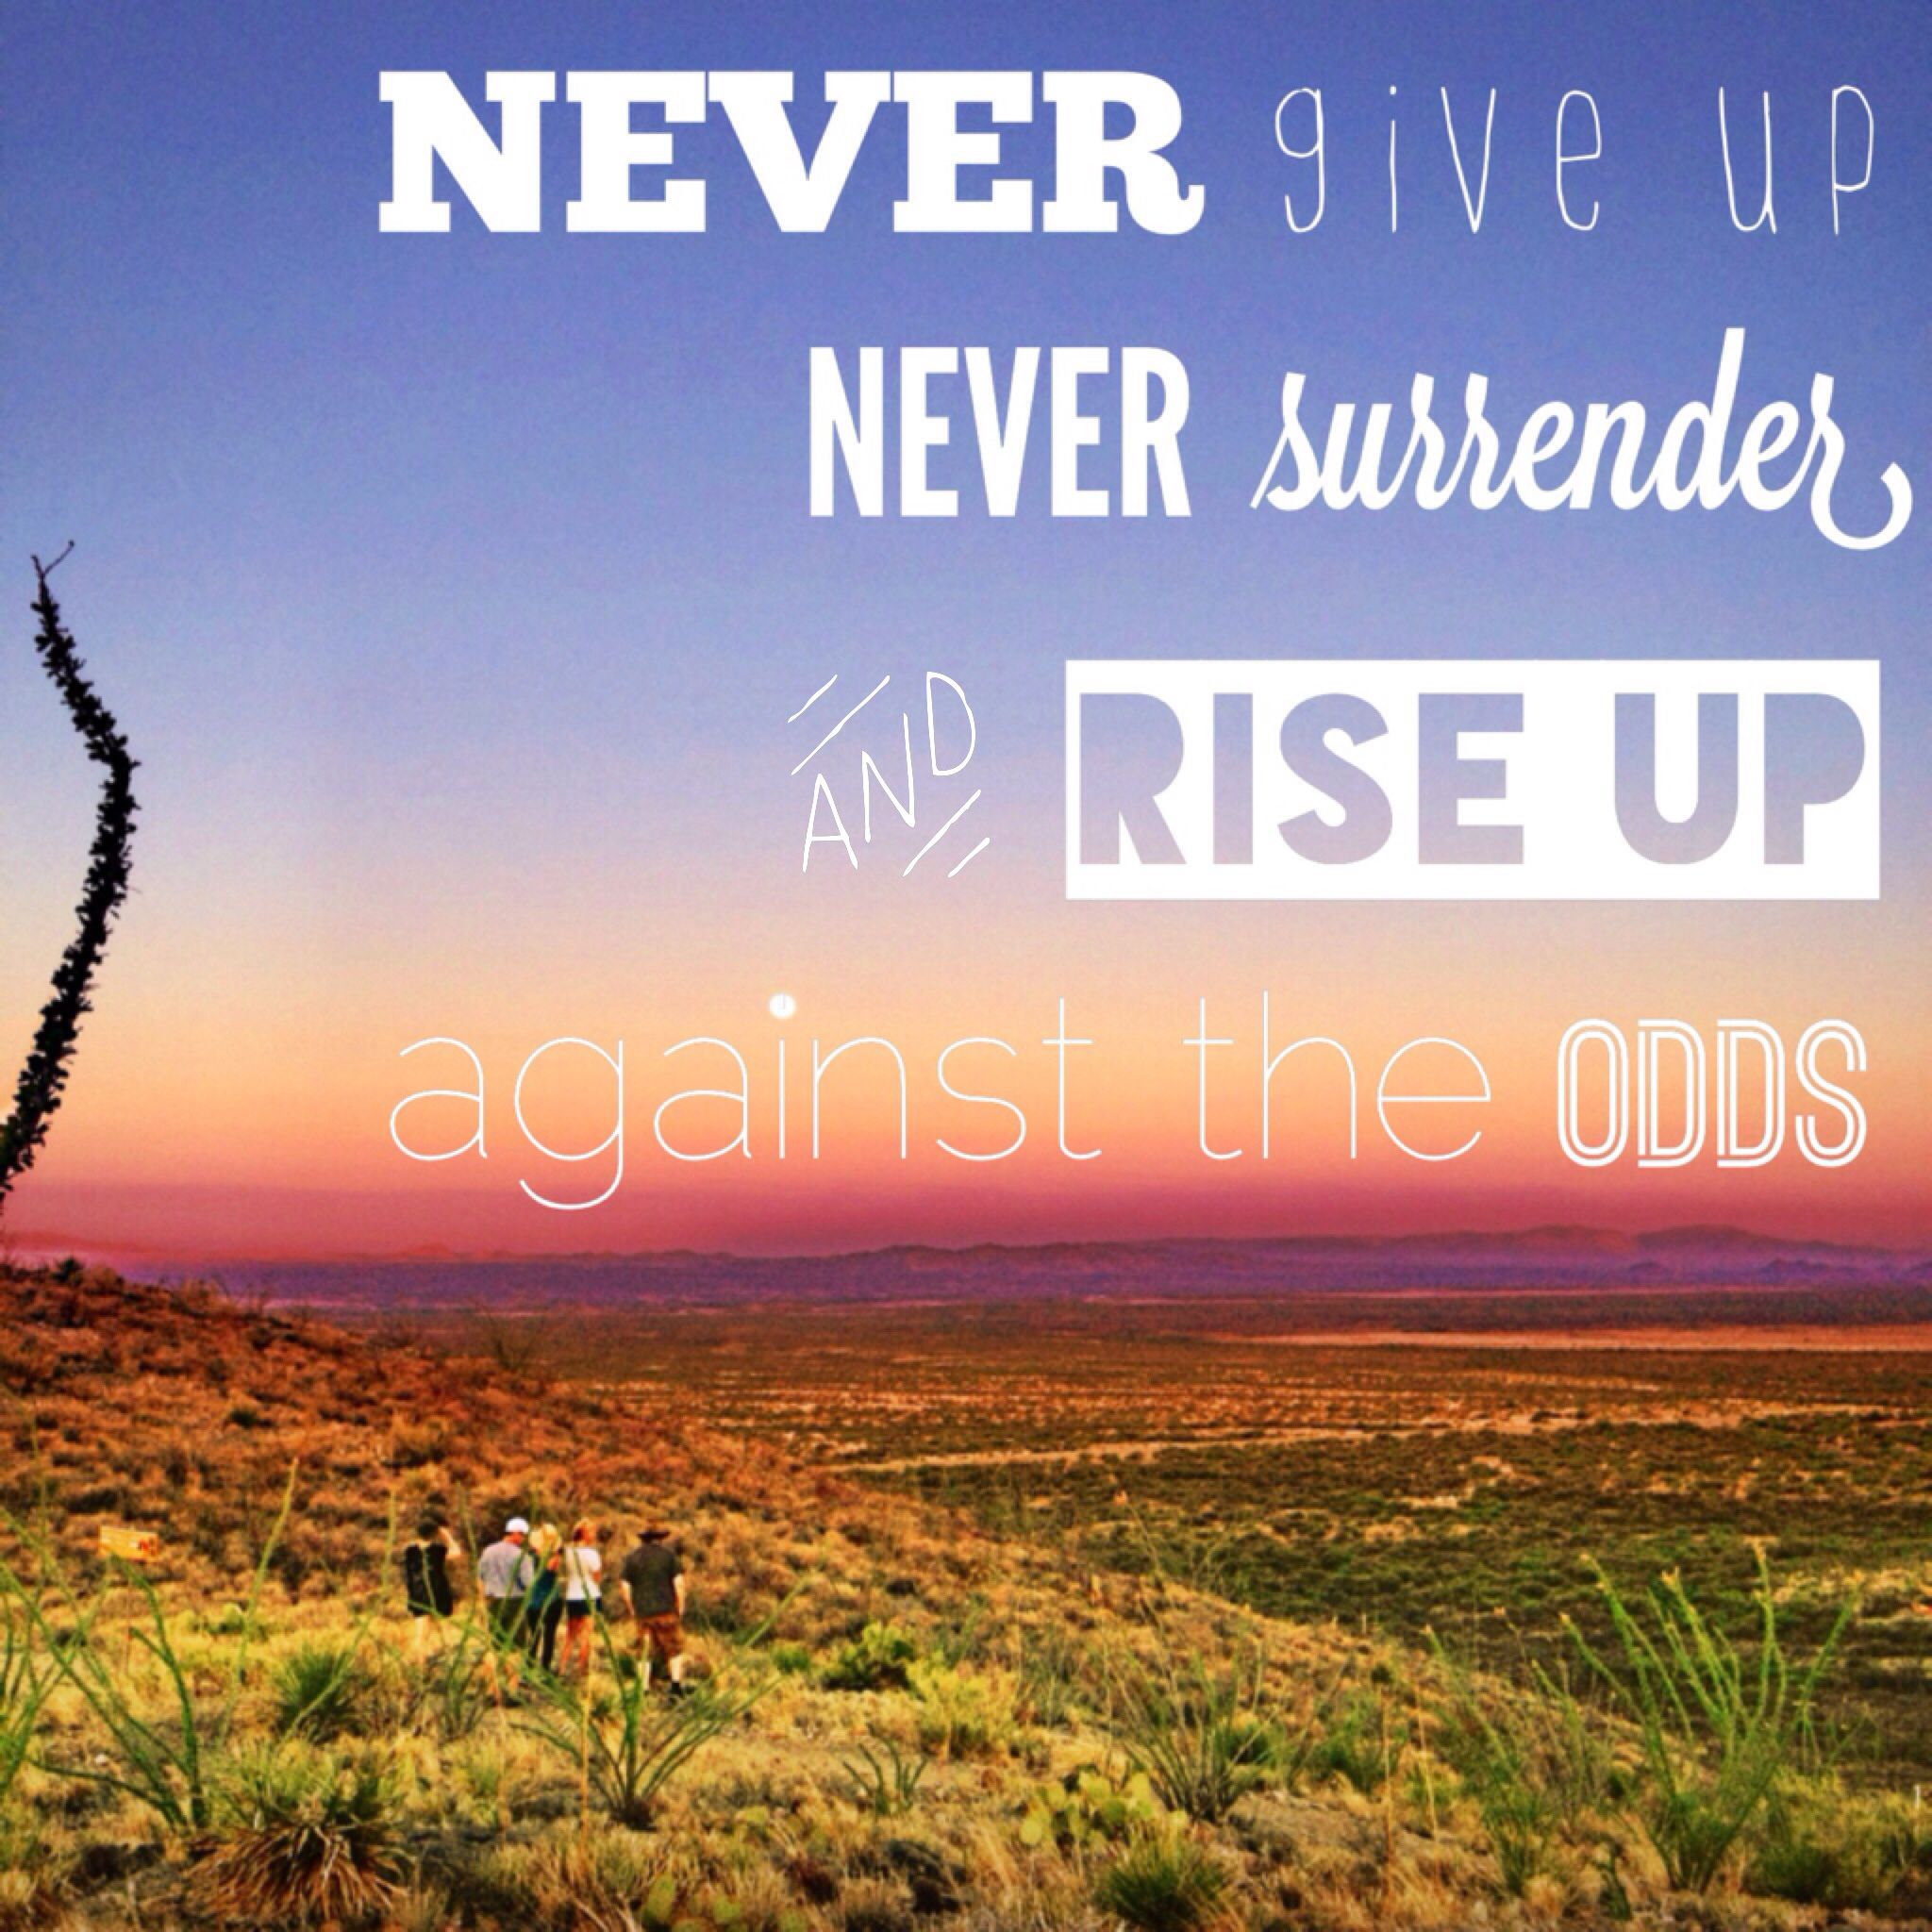 Never Giving Up Quotes: Hockey Never Give Up Quotes. QuotesGram